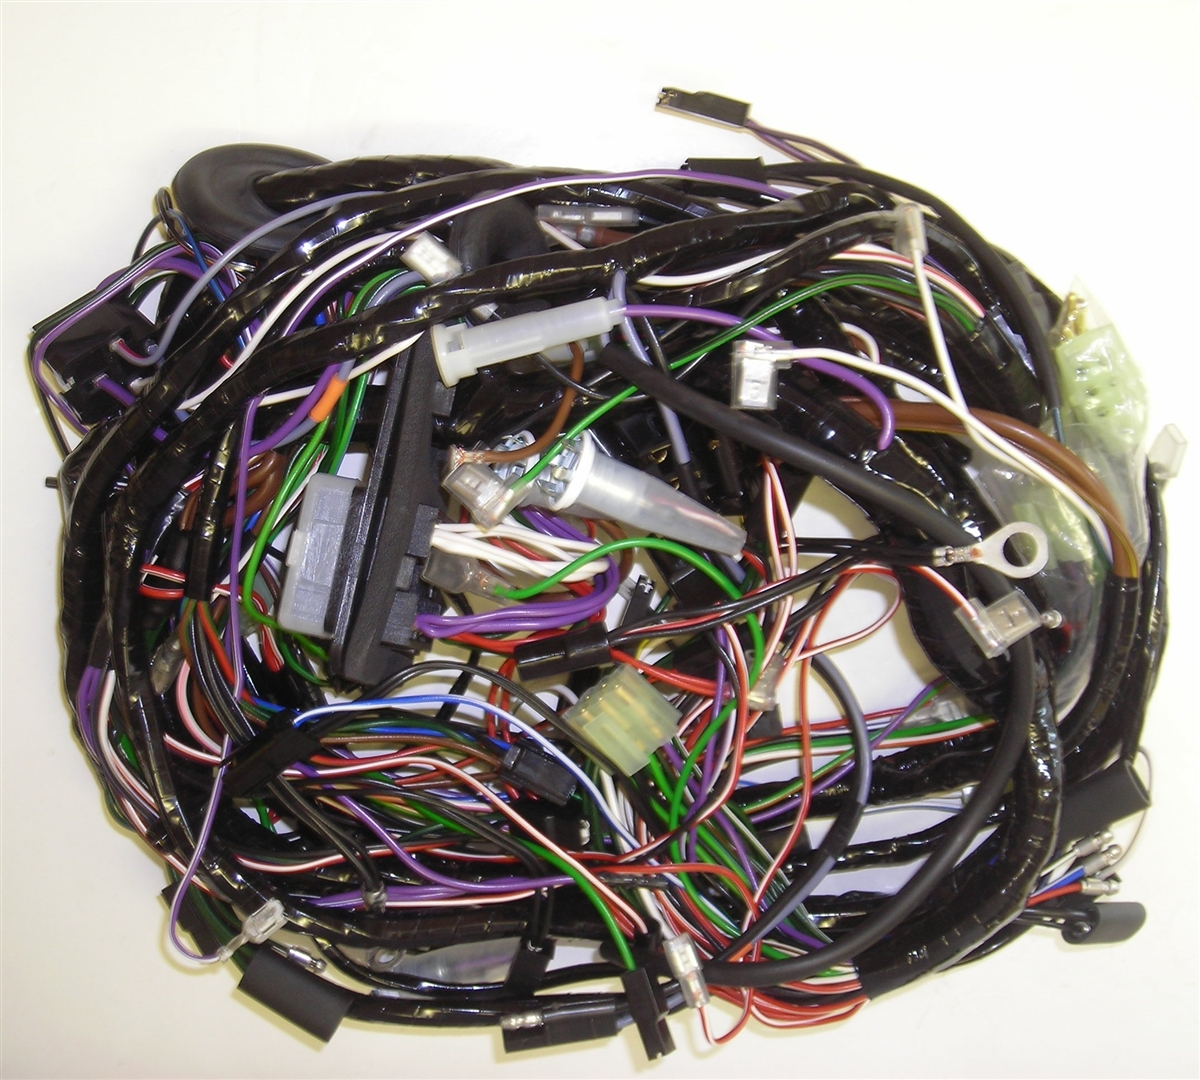 1531(3) 2?1443618008 spitfire1500 main wiring harness 1979 triumph spitfire wiring harness at webbmarketing.co